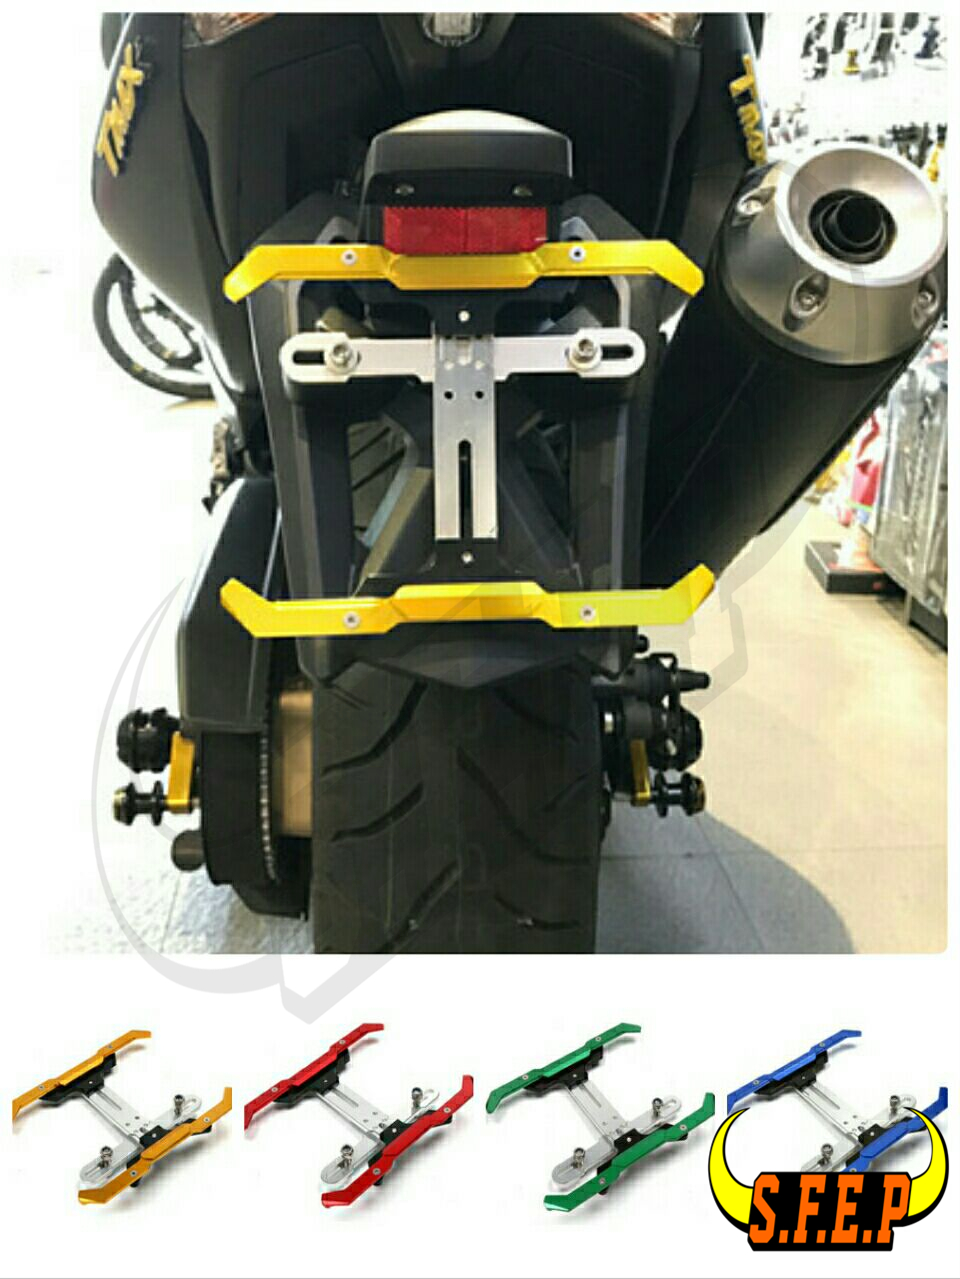 Motorcycle License Number Plate Frame Holder Adjustable Bracket For Yamaha TMAX530 NMAX155 BWS125 SMAX155 XMAX300 XMAX250